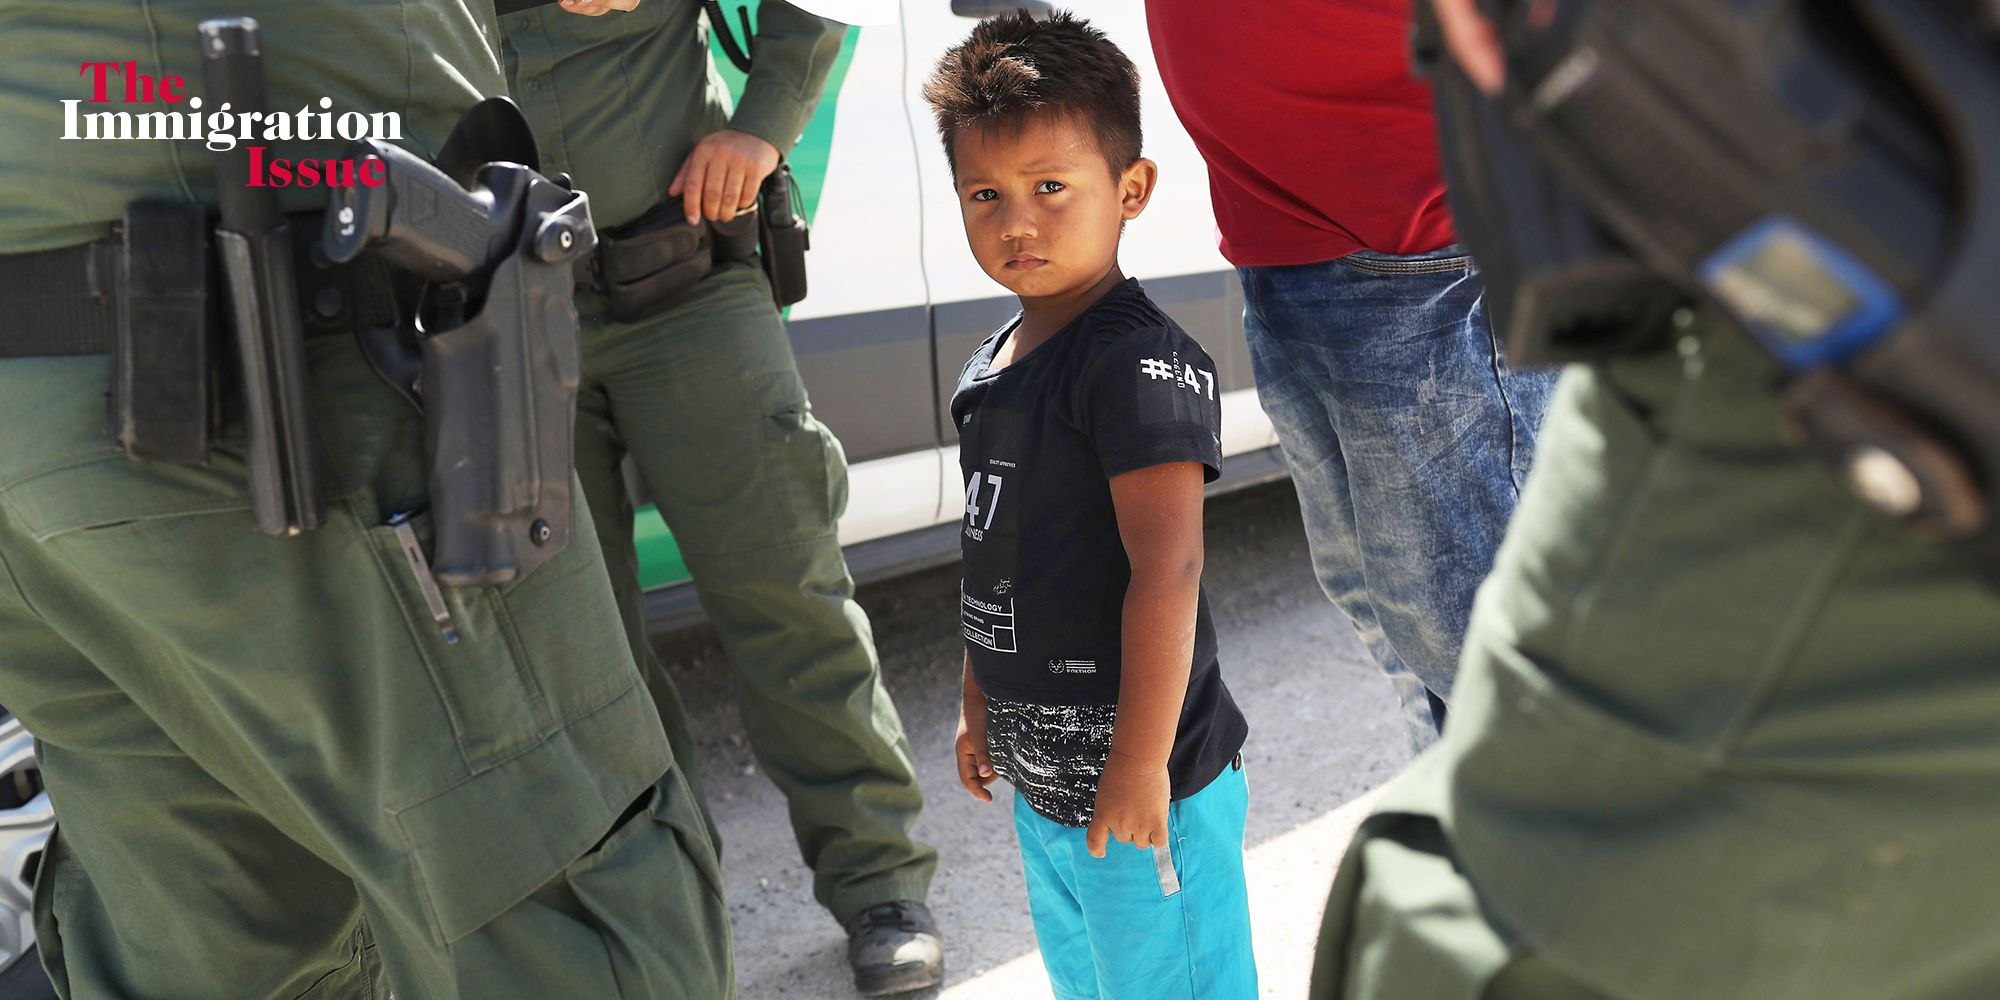 How To Help Immigrant Children Separated From Their Families at The Border